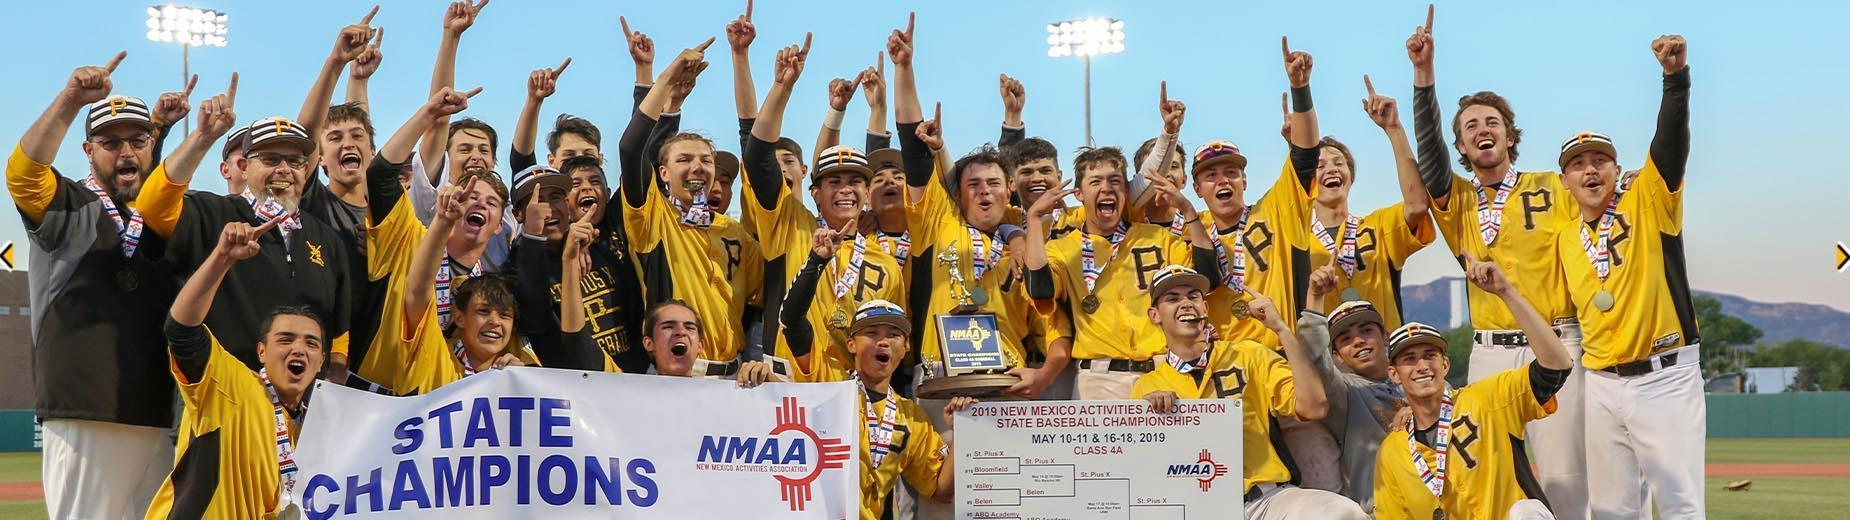 Sartans capture the Class 4A state baseball championship.